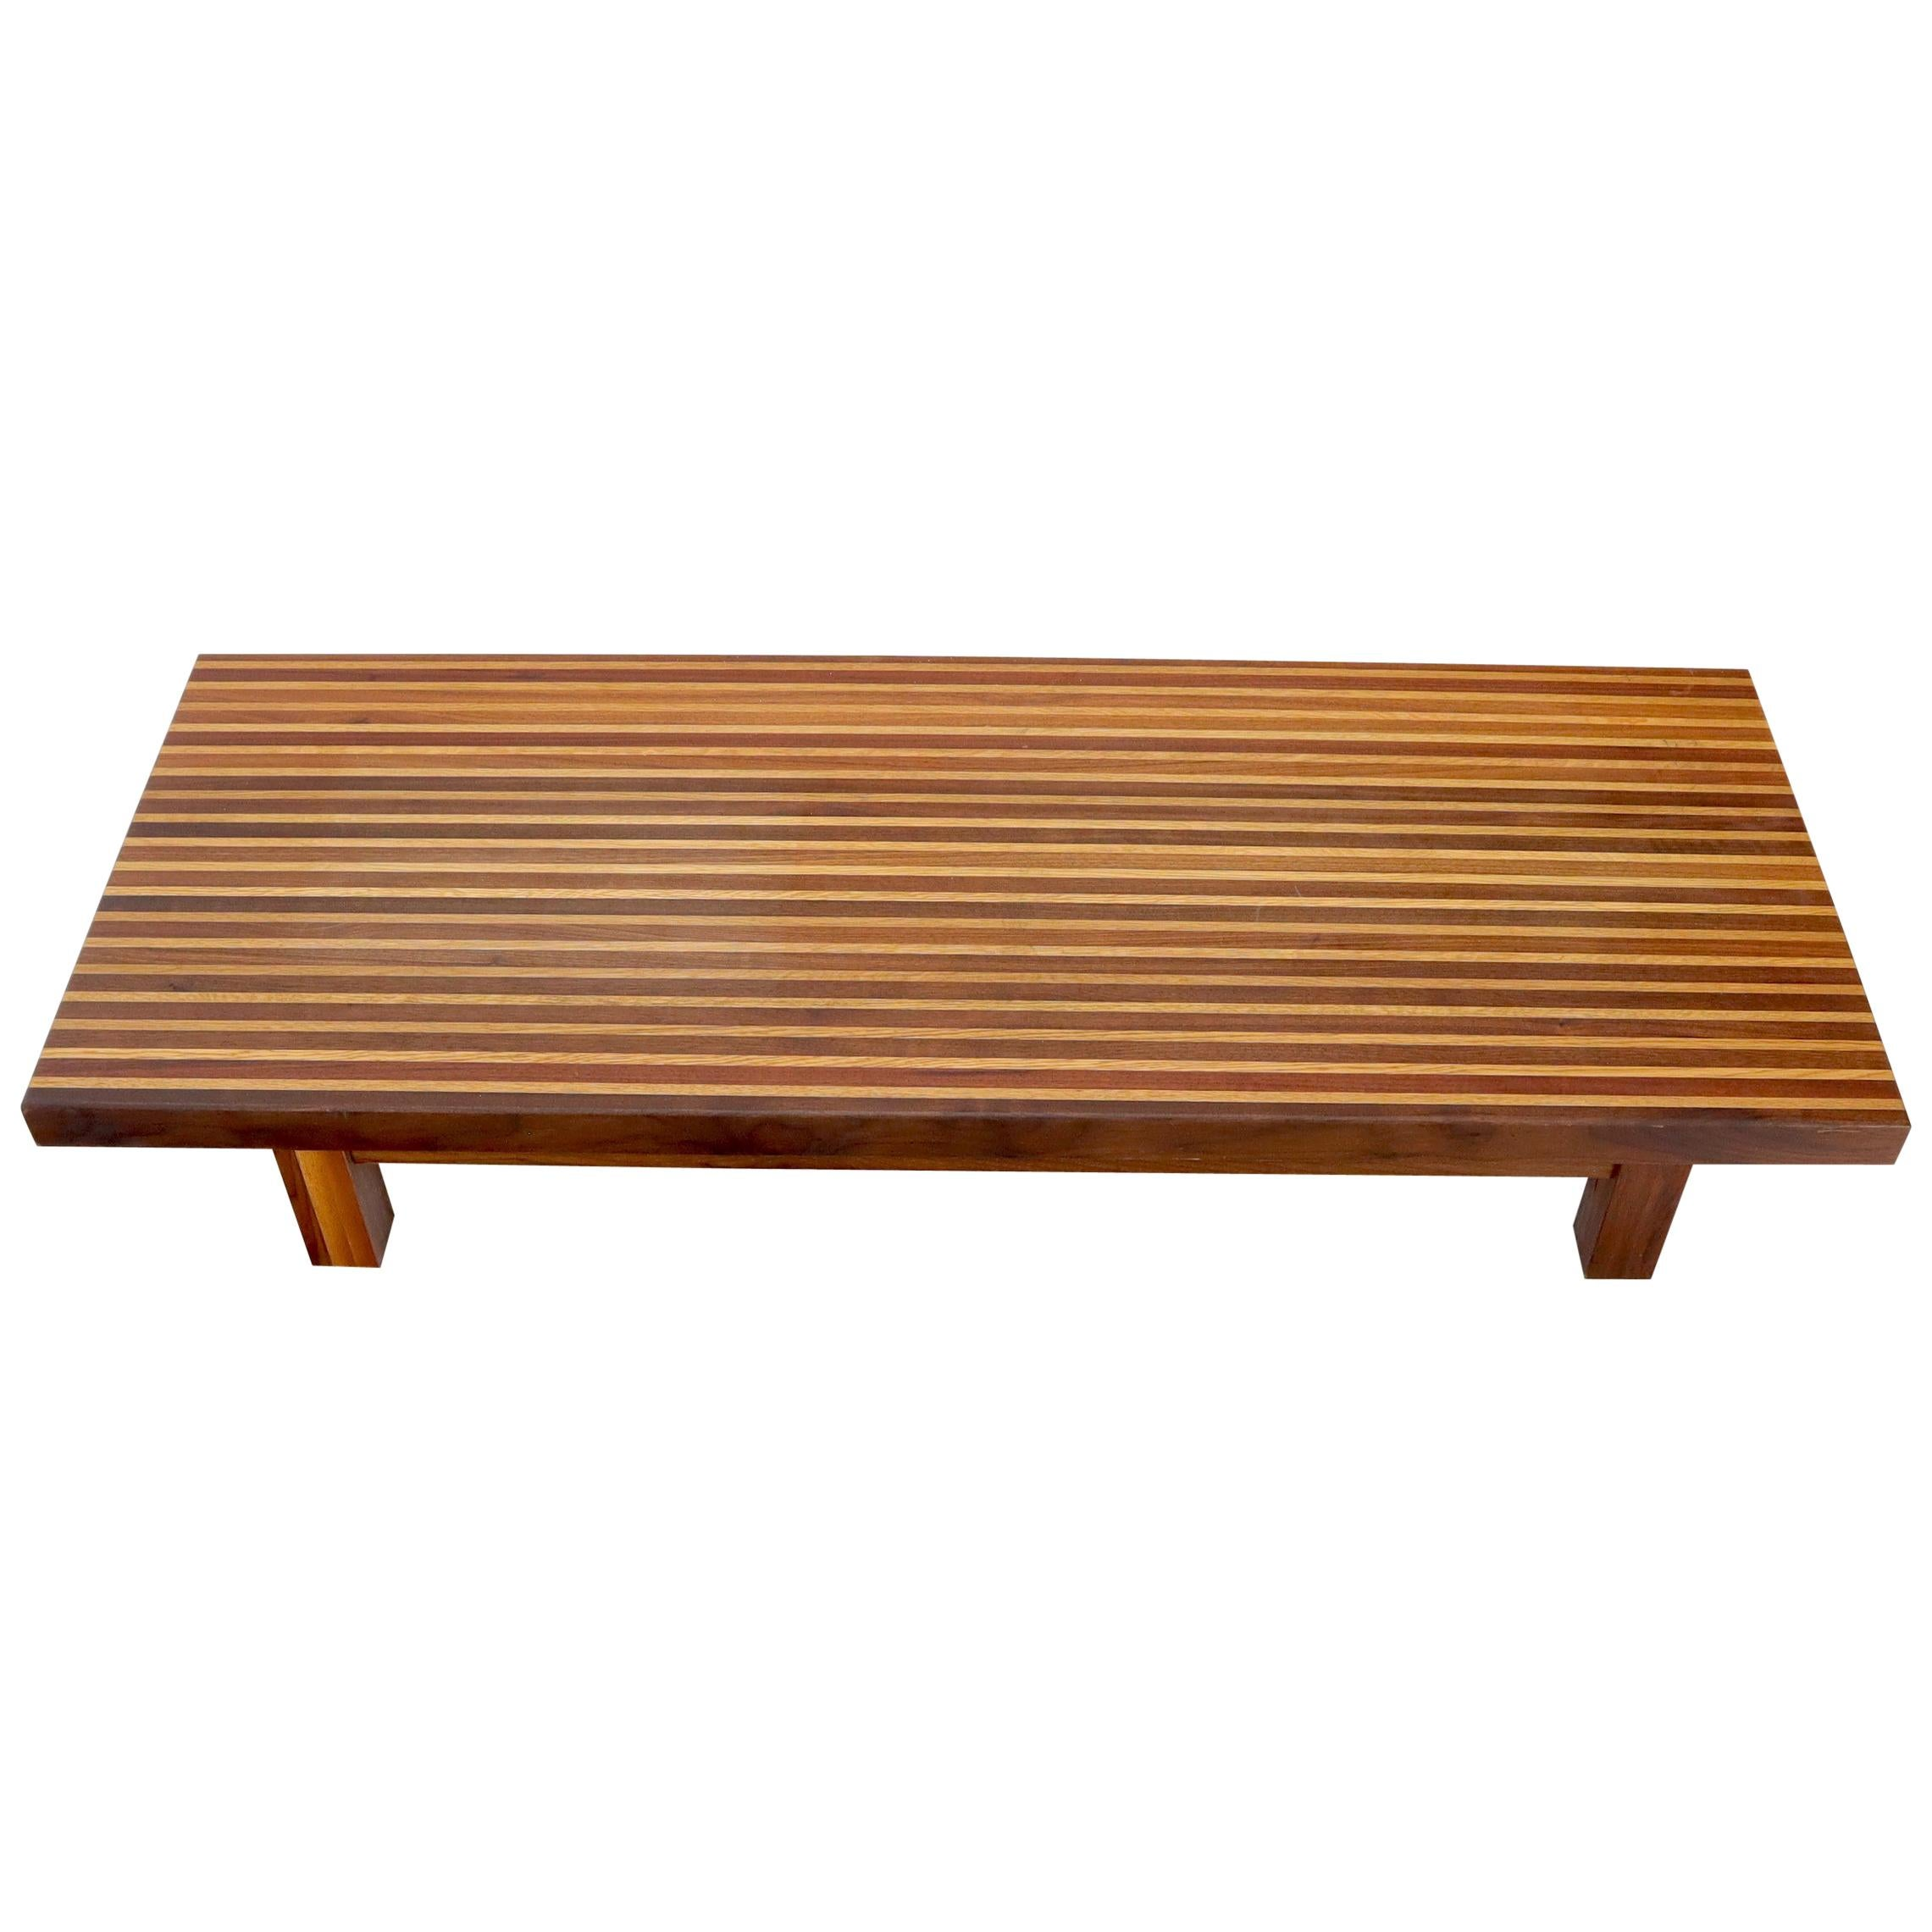 Solid Block Walnut and Oak Rectangular Low Coffee Table